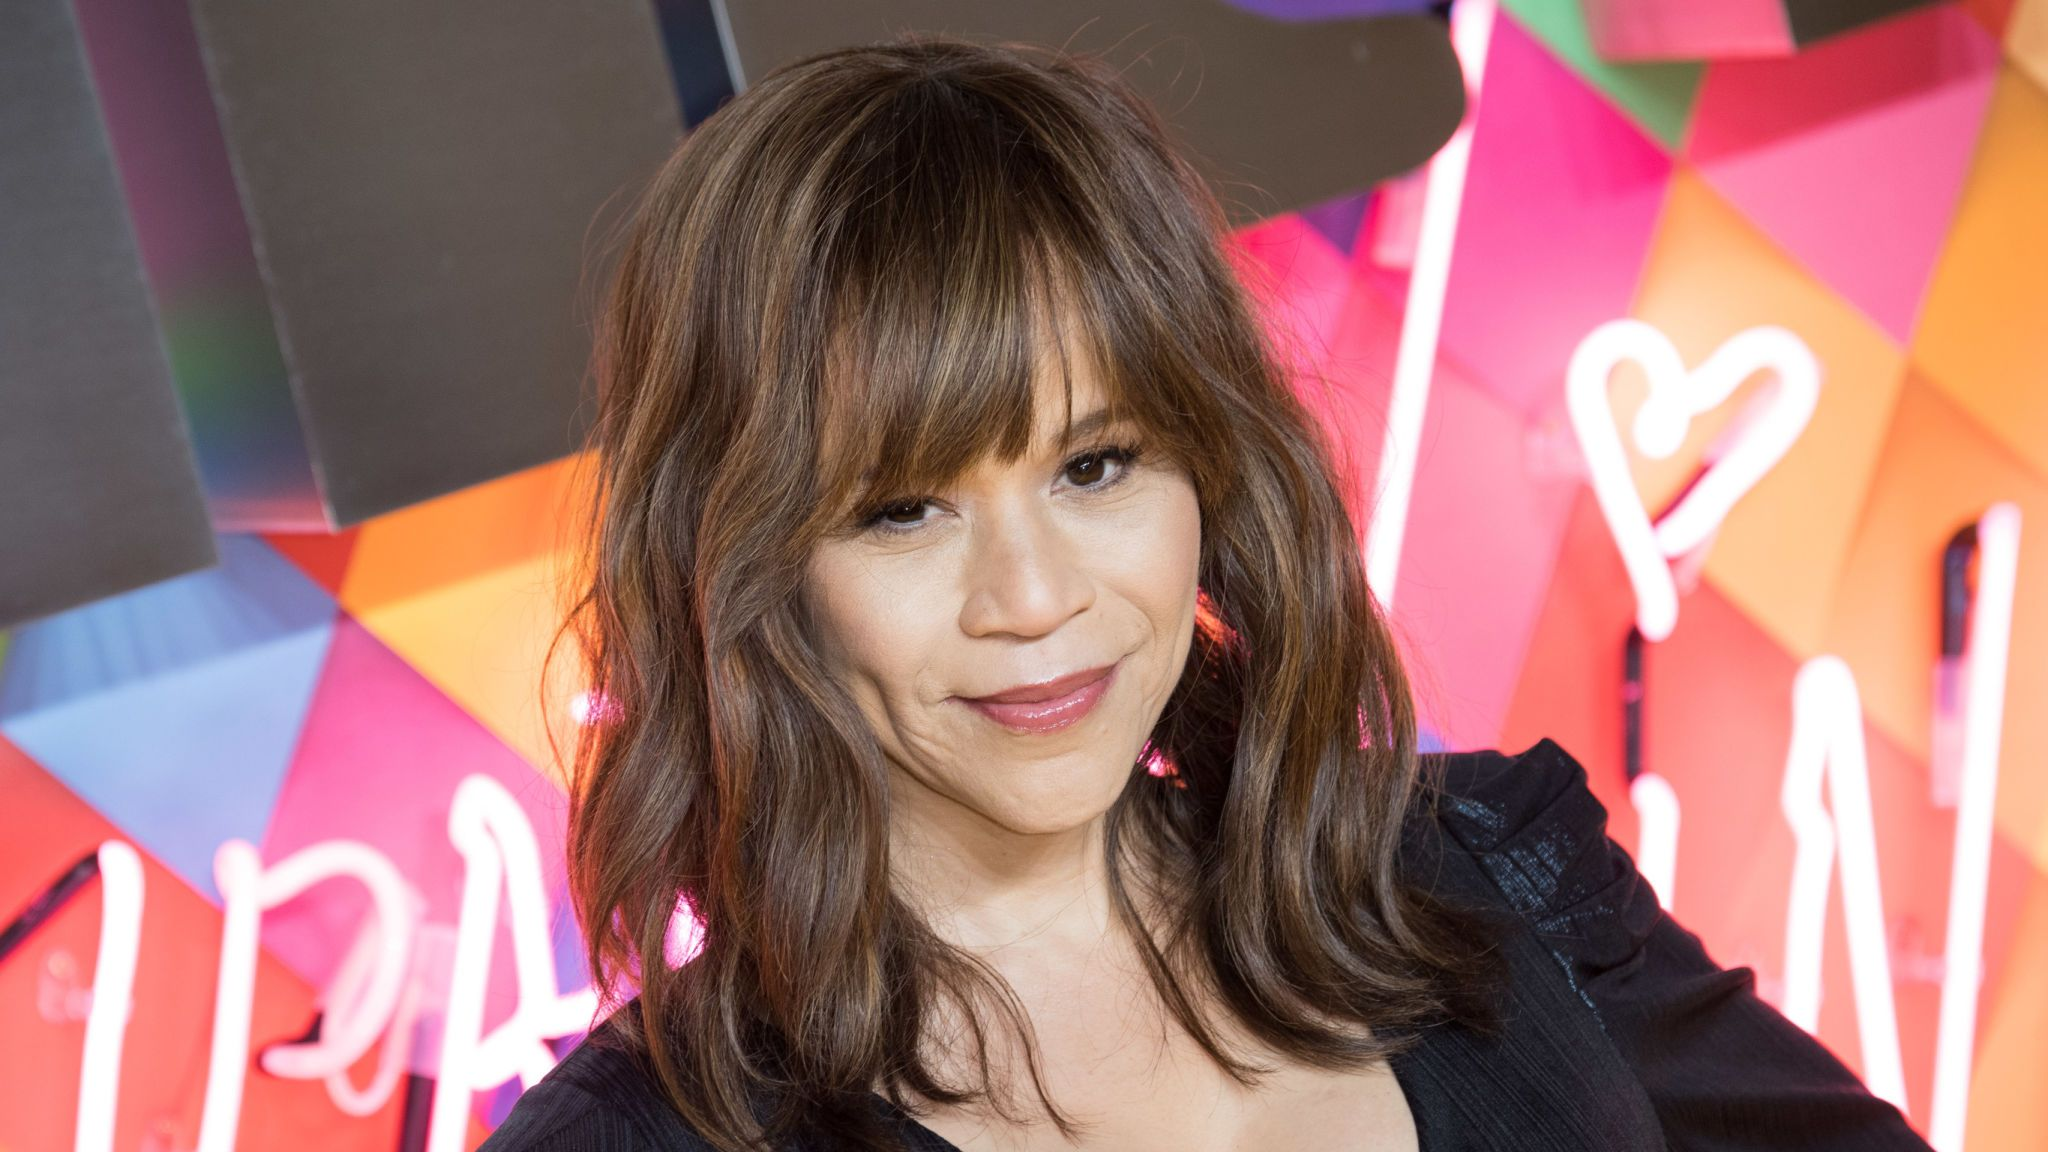 """LONDON, ENGLAND - JANUARY 29: Rosie Perez attends the """"Birds of Prey: And the Fantabulous Emancipation Of One Harley Quinn"""" World Premiere at the BFI IMAX on January 29, 2020 in London, England. (Photo by Jeff Spicer/Getty Images)"""